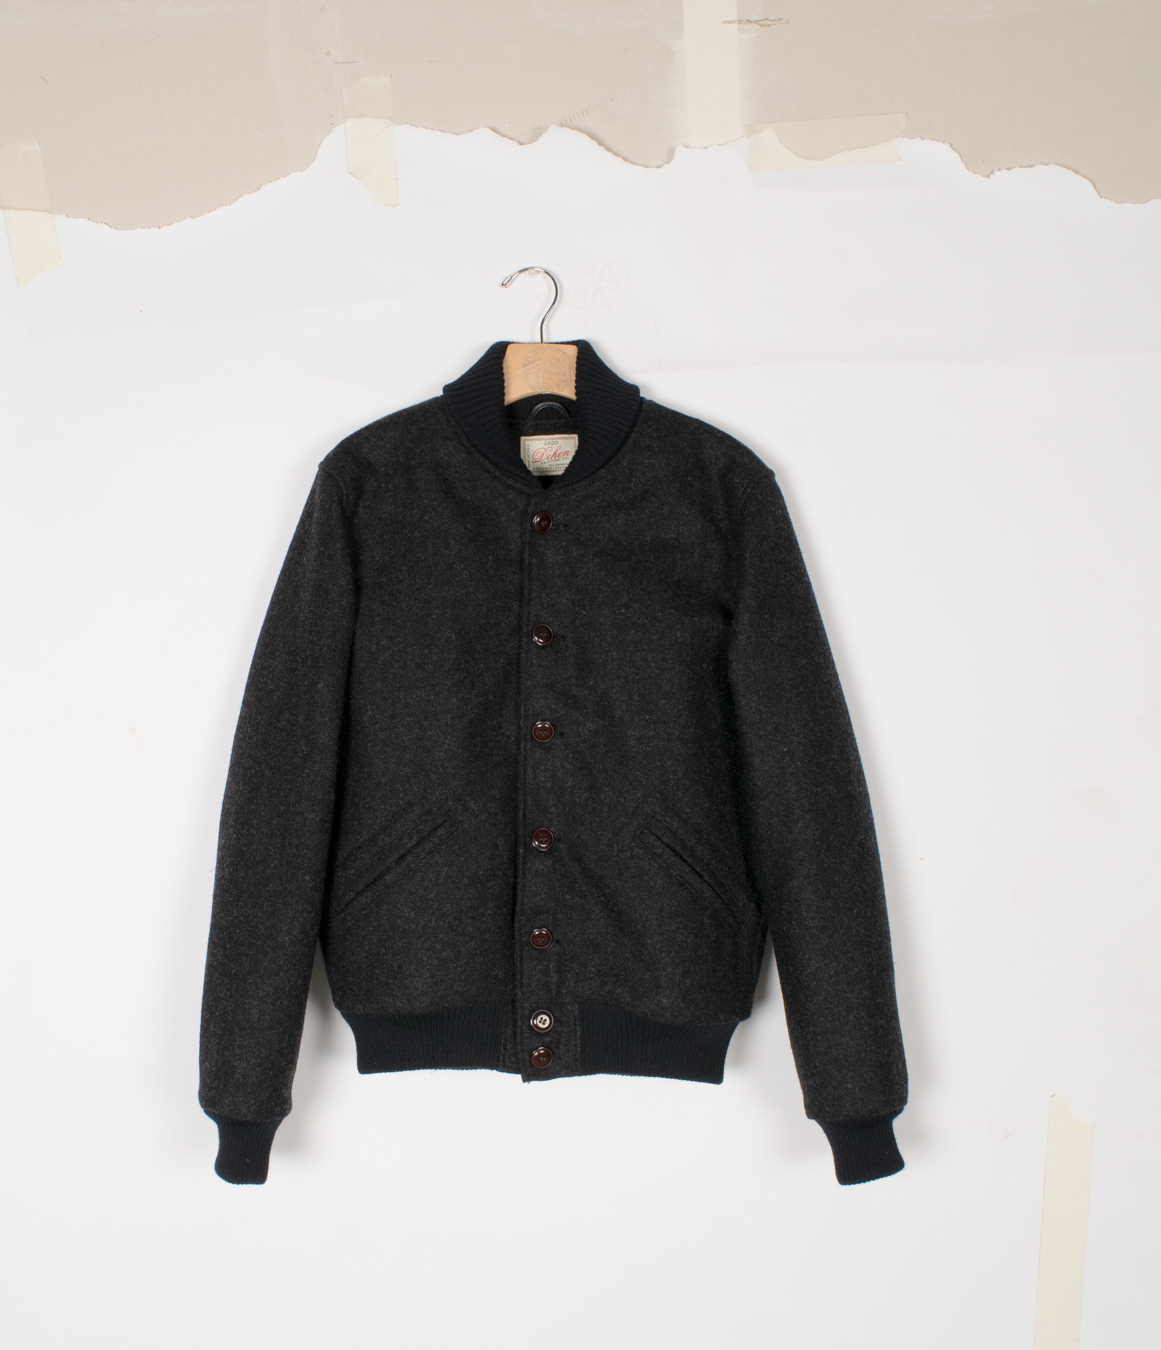 Club Jacket - Dark Charcoal - $475